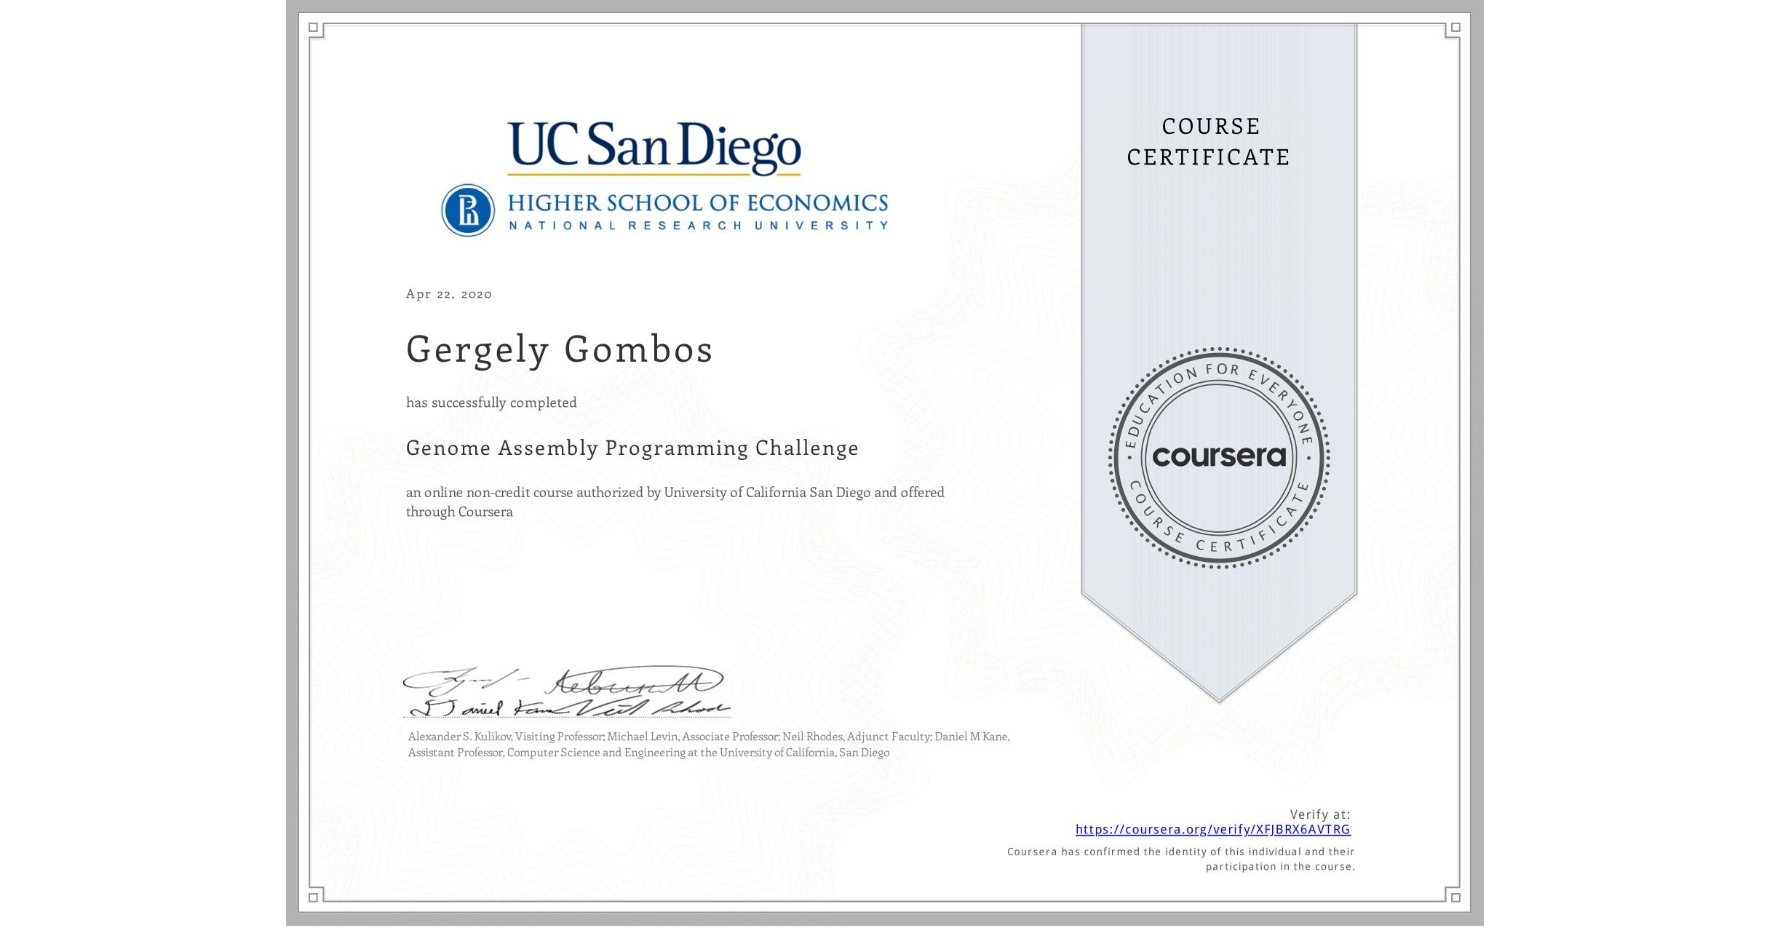 View certificate for Gergely Gombos, Genome Assembly Programming Challenge, an online non-credit course authorized by University of California San Diego & HSE University and offered through Coursera